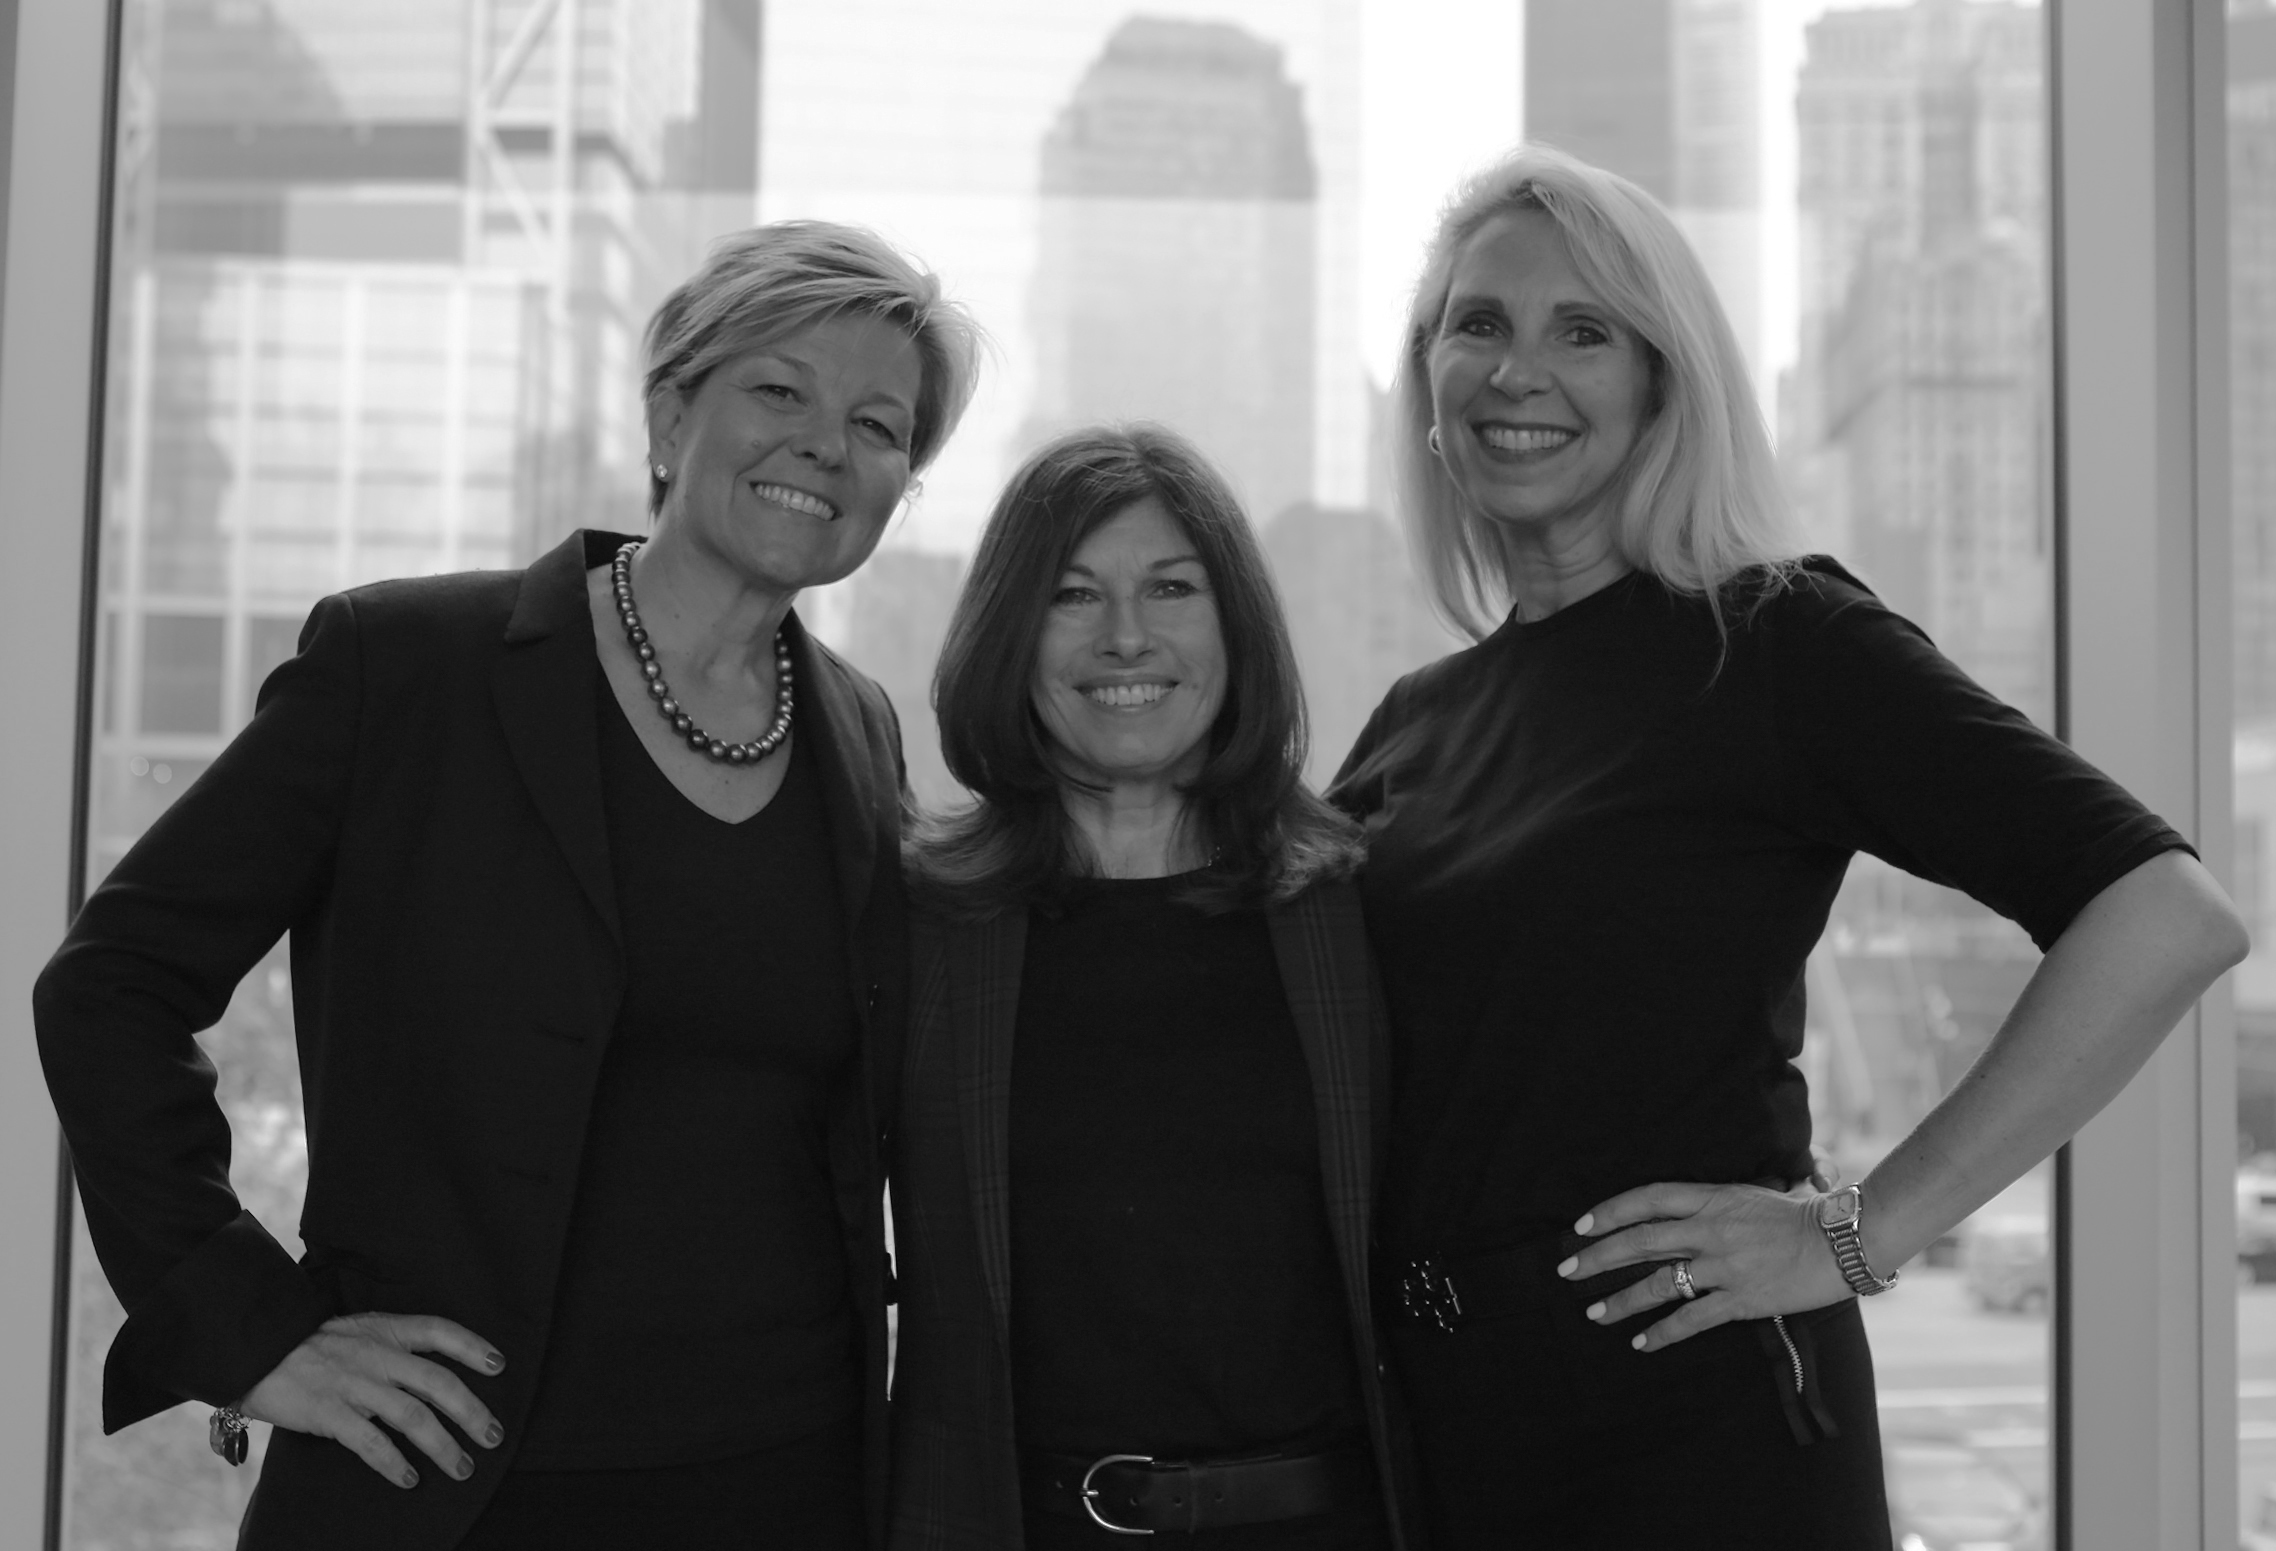 Inspiring Comfort's founders (left to right) Jill Bornstein, Mary Perry, and Jen Marr